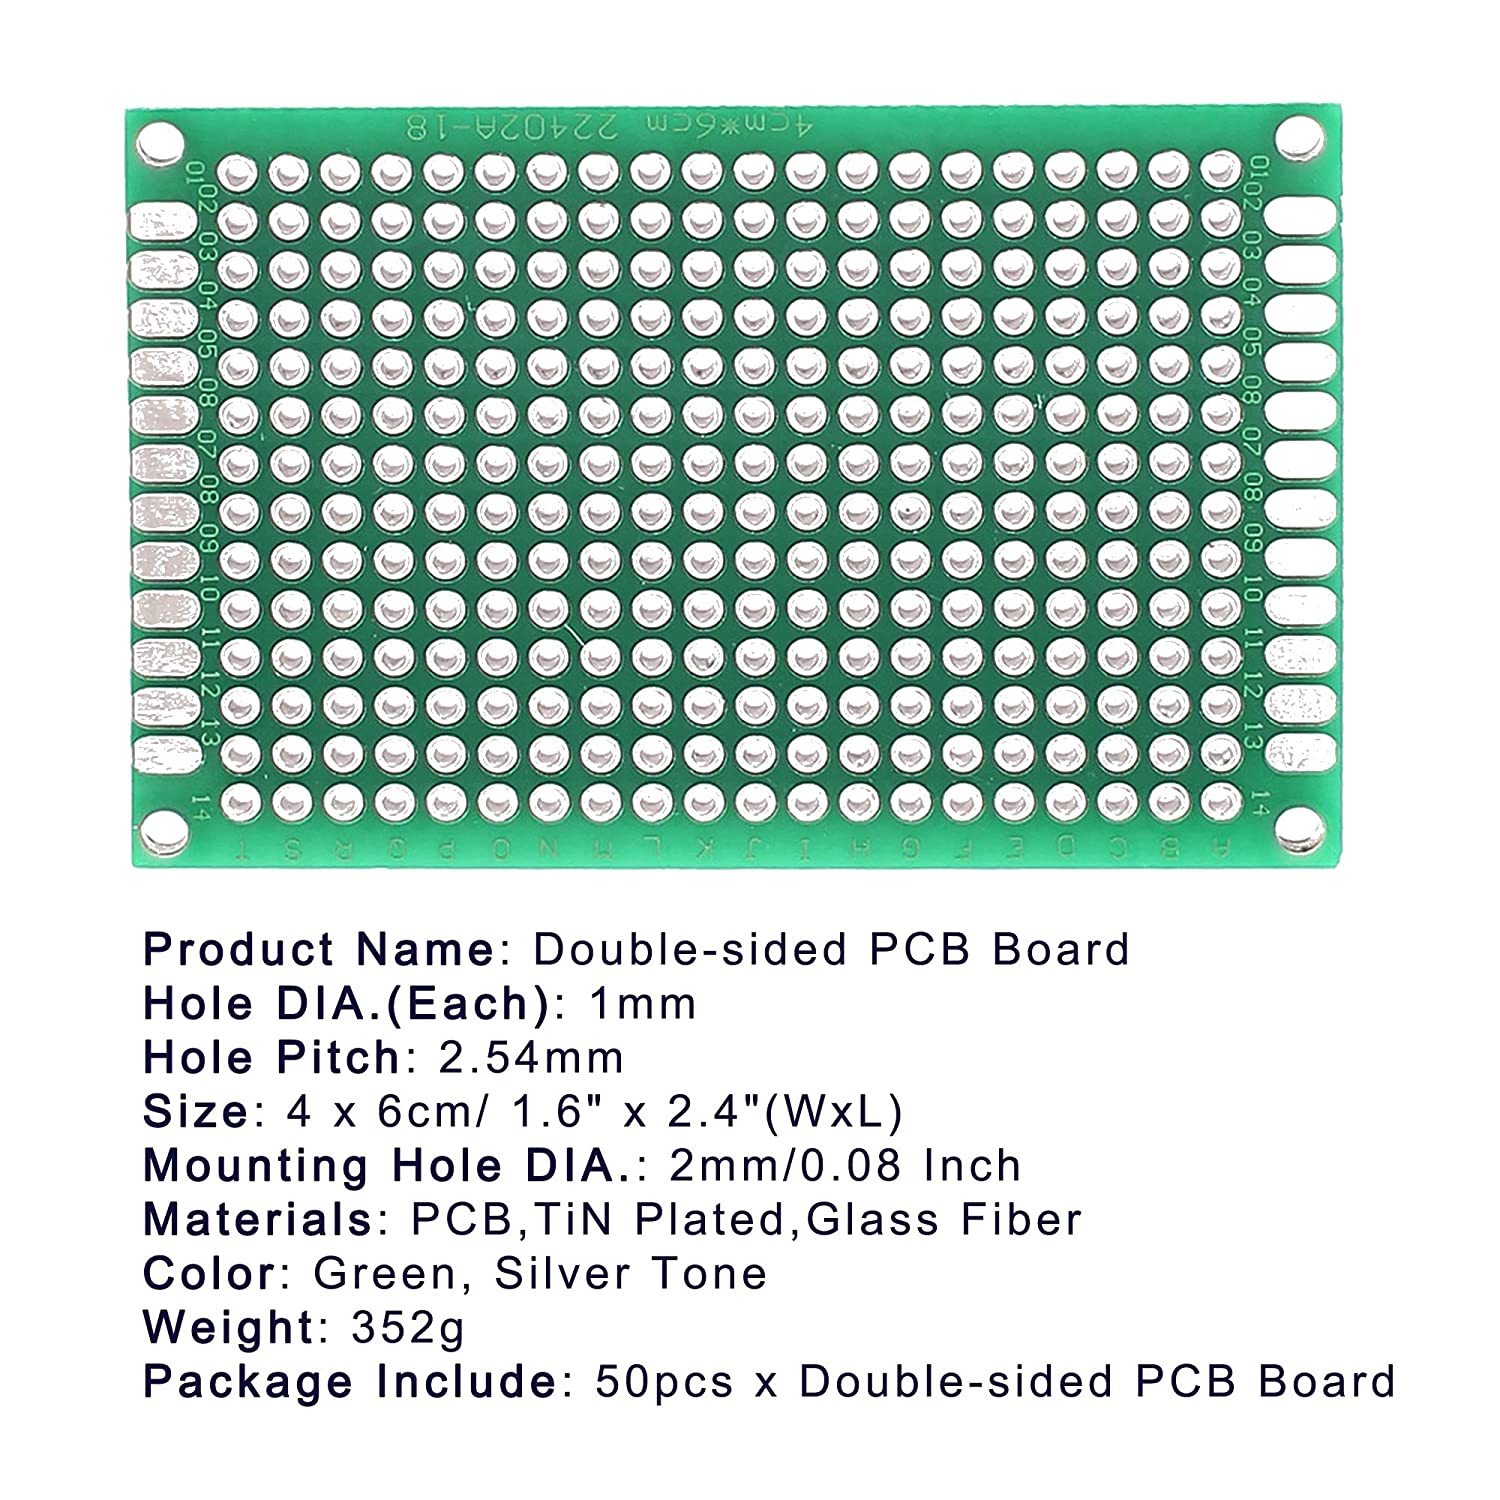 Lantee 50 Pcs Double Sided Protoboard Prototyping Pcb Prototype Aquisition Of Electronic Circuit Boards Pcbs And Universal Printed Board Kit 4cm X 6cm For Diy Industrial Scientific